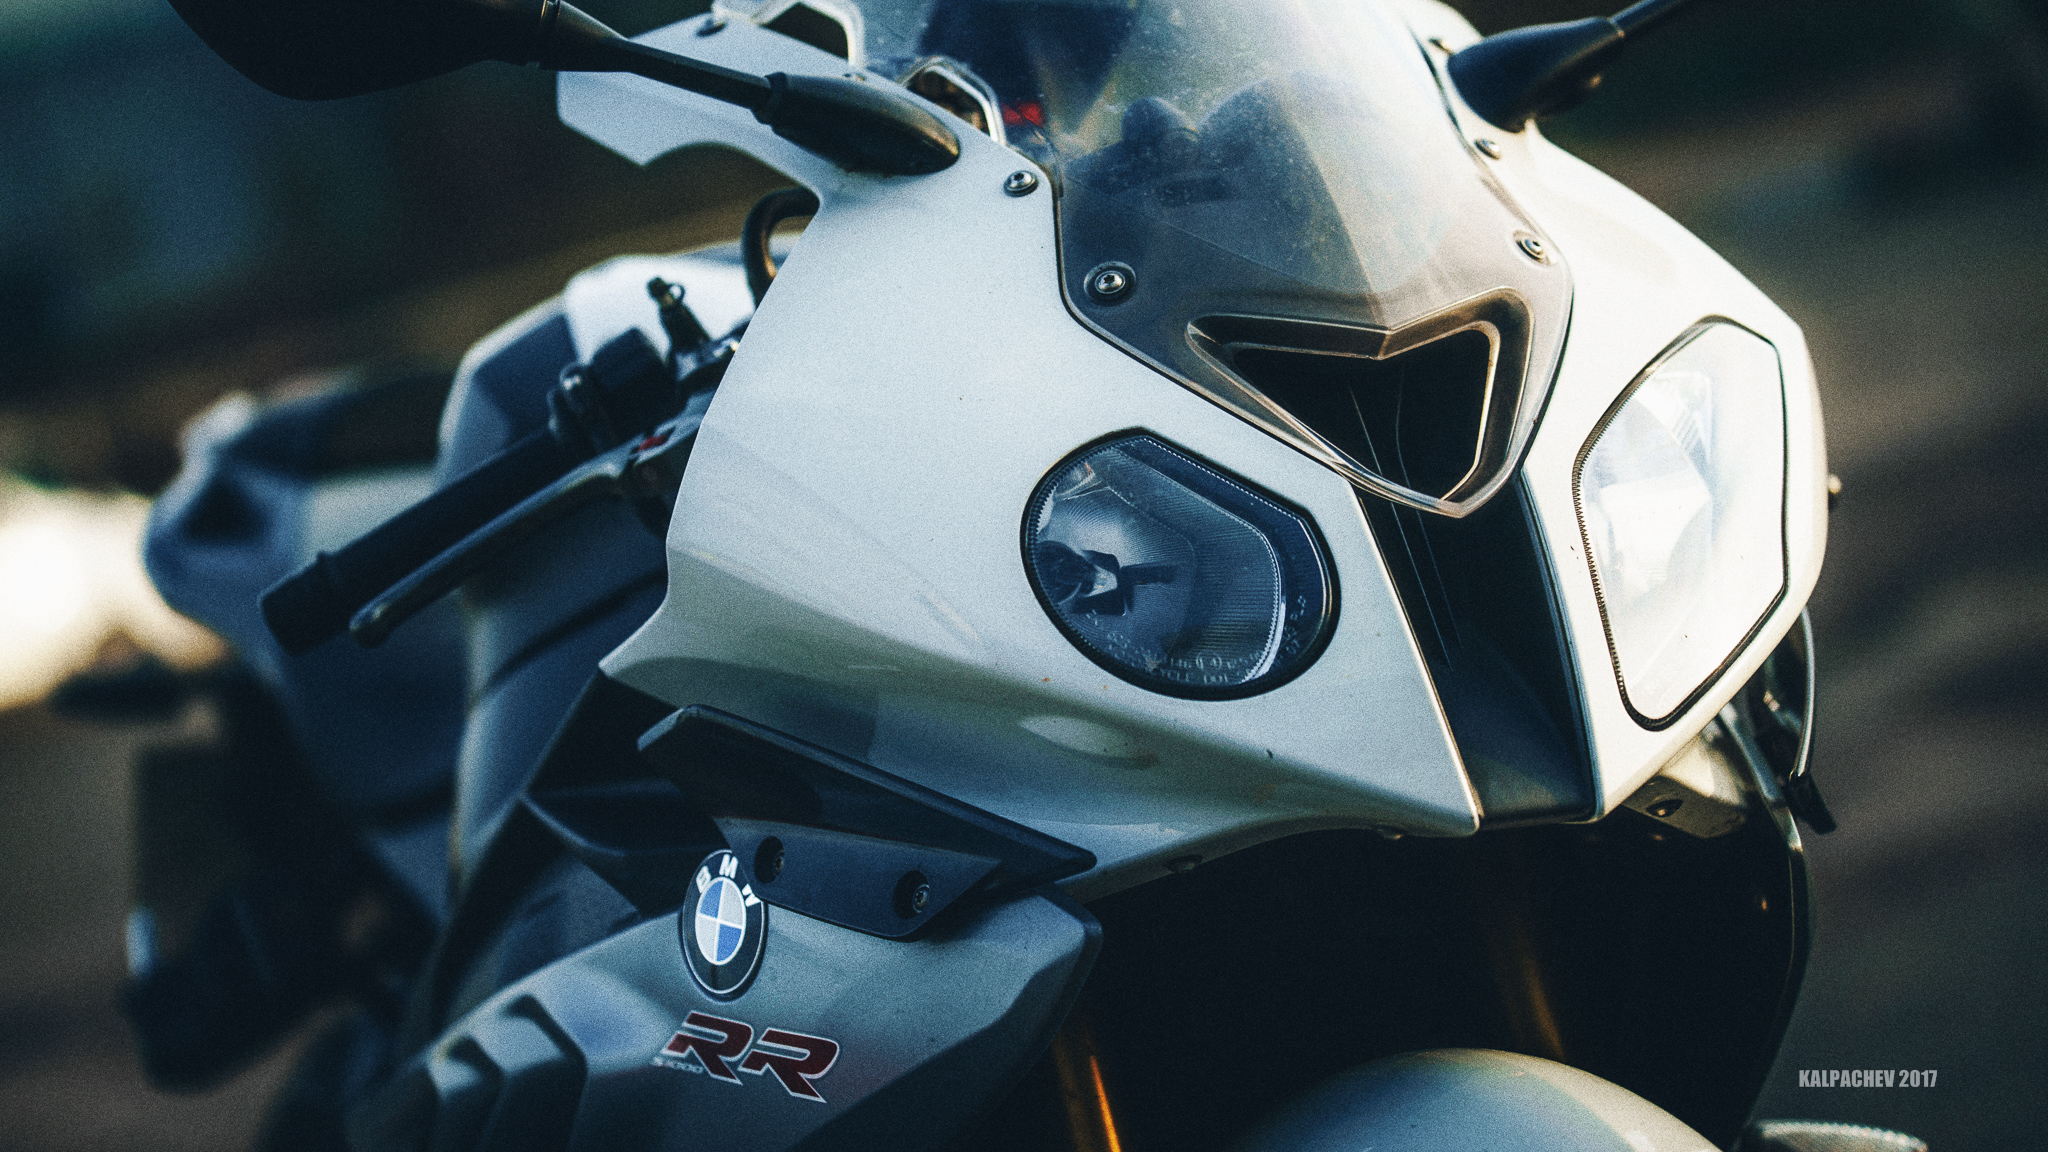 – BMW S1000RR – with Laowa 105 STF F/2 lens